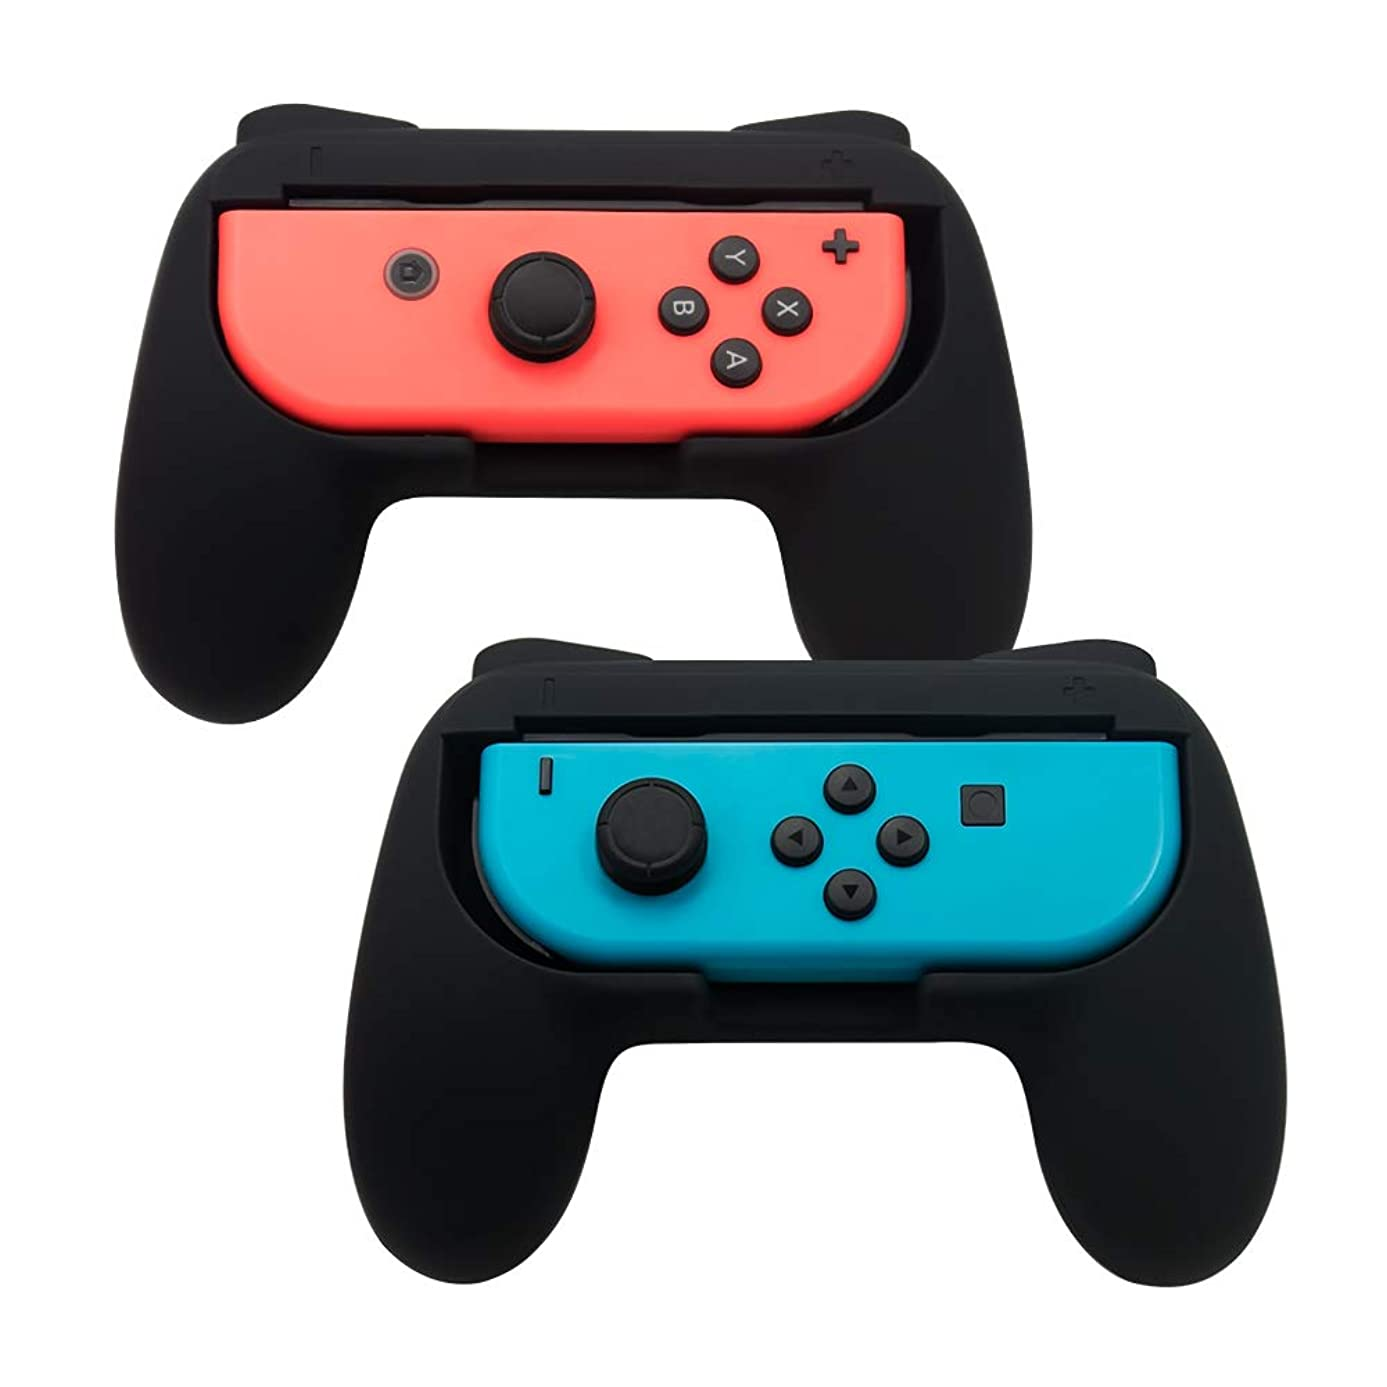 TOMSIN Grips for Nintendo Switch Joy-Con [Upgrade Version], Wear-Resistant and Non-Slip Matte Surface Handle Kit for Switch Joy Con Controllers 2-Pack (Black)